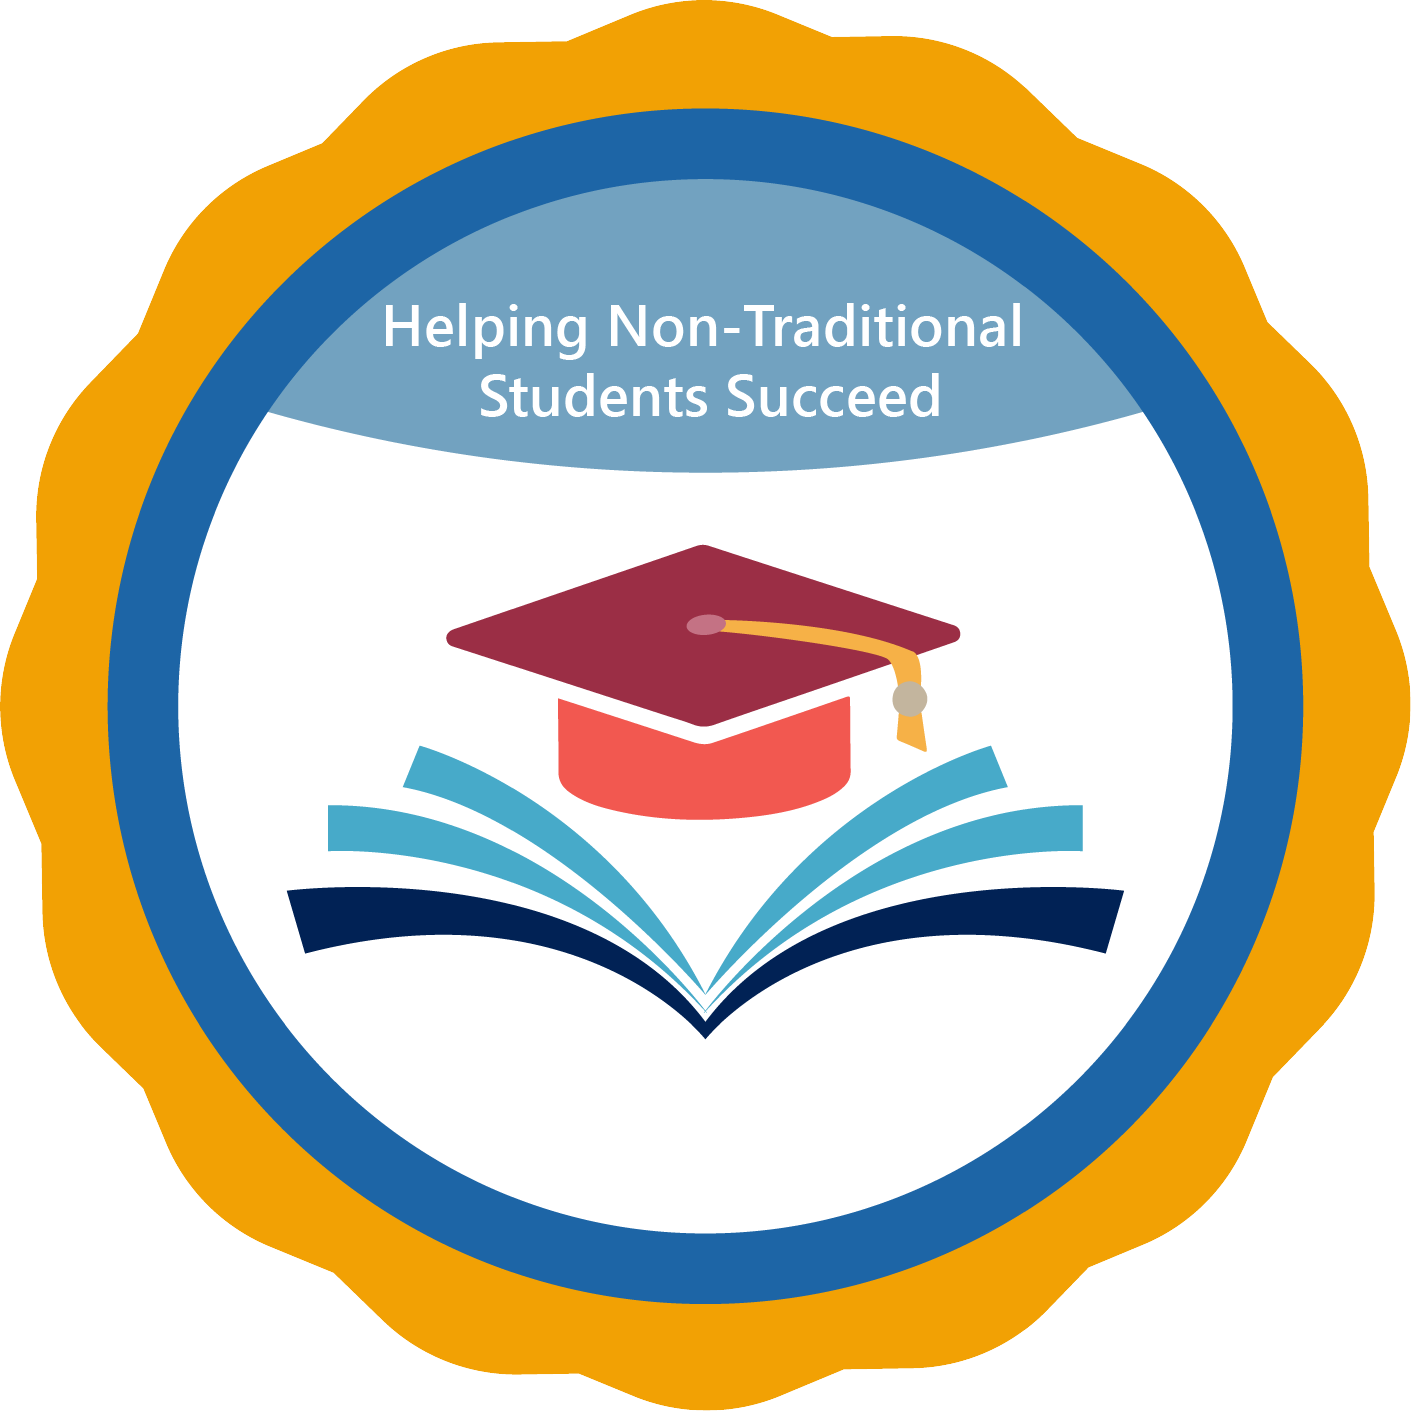 Helping Non-Traditional Students Succeed